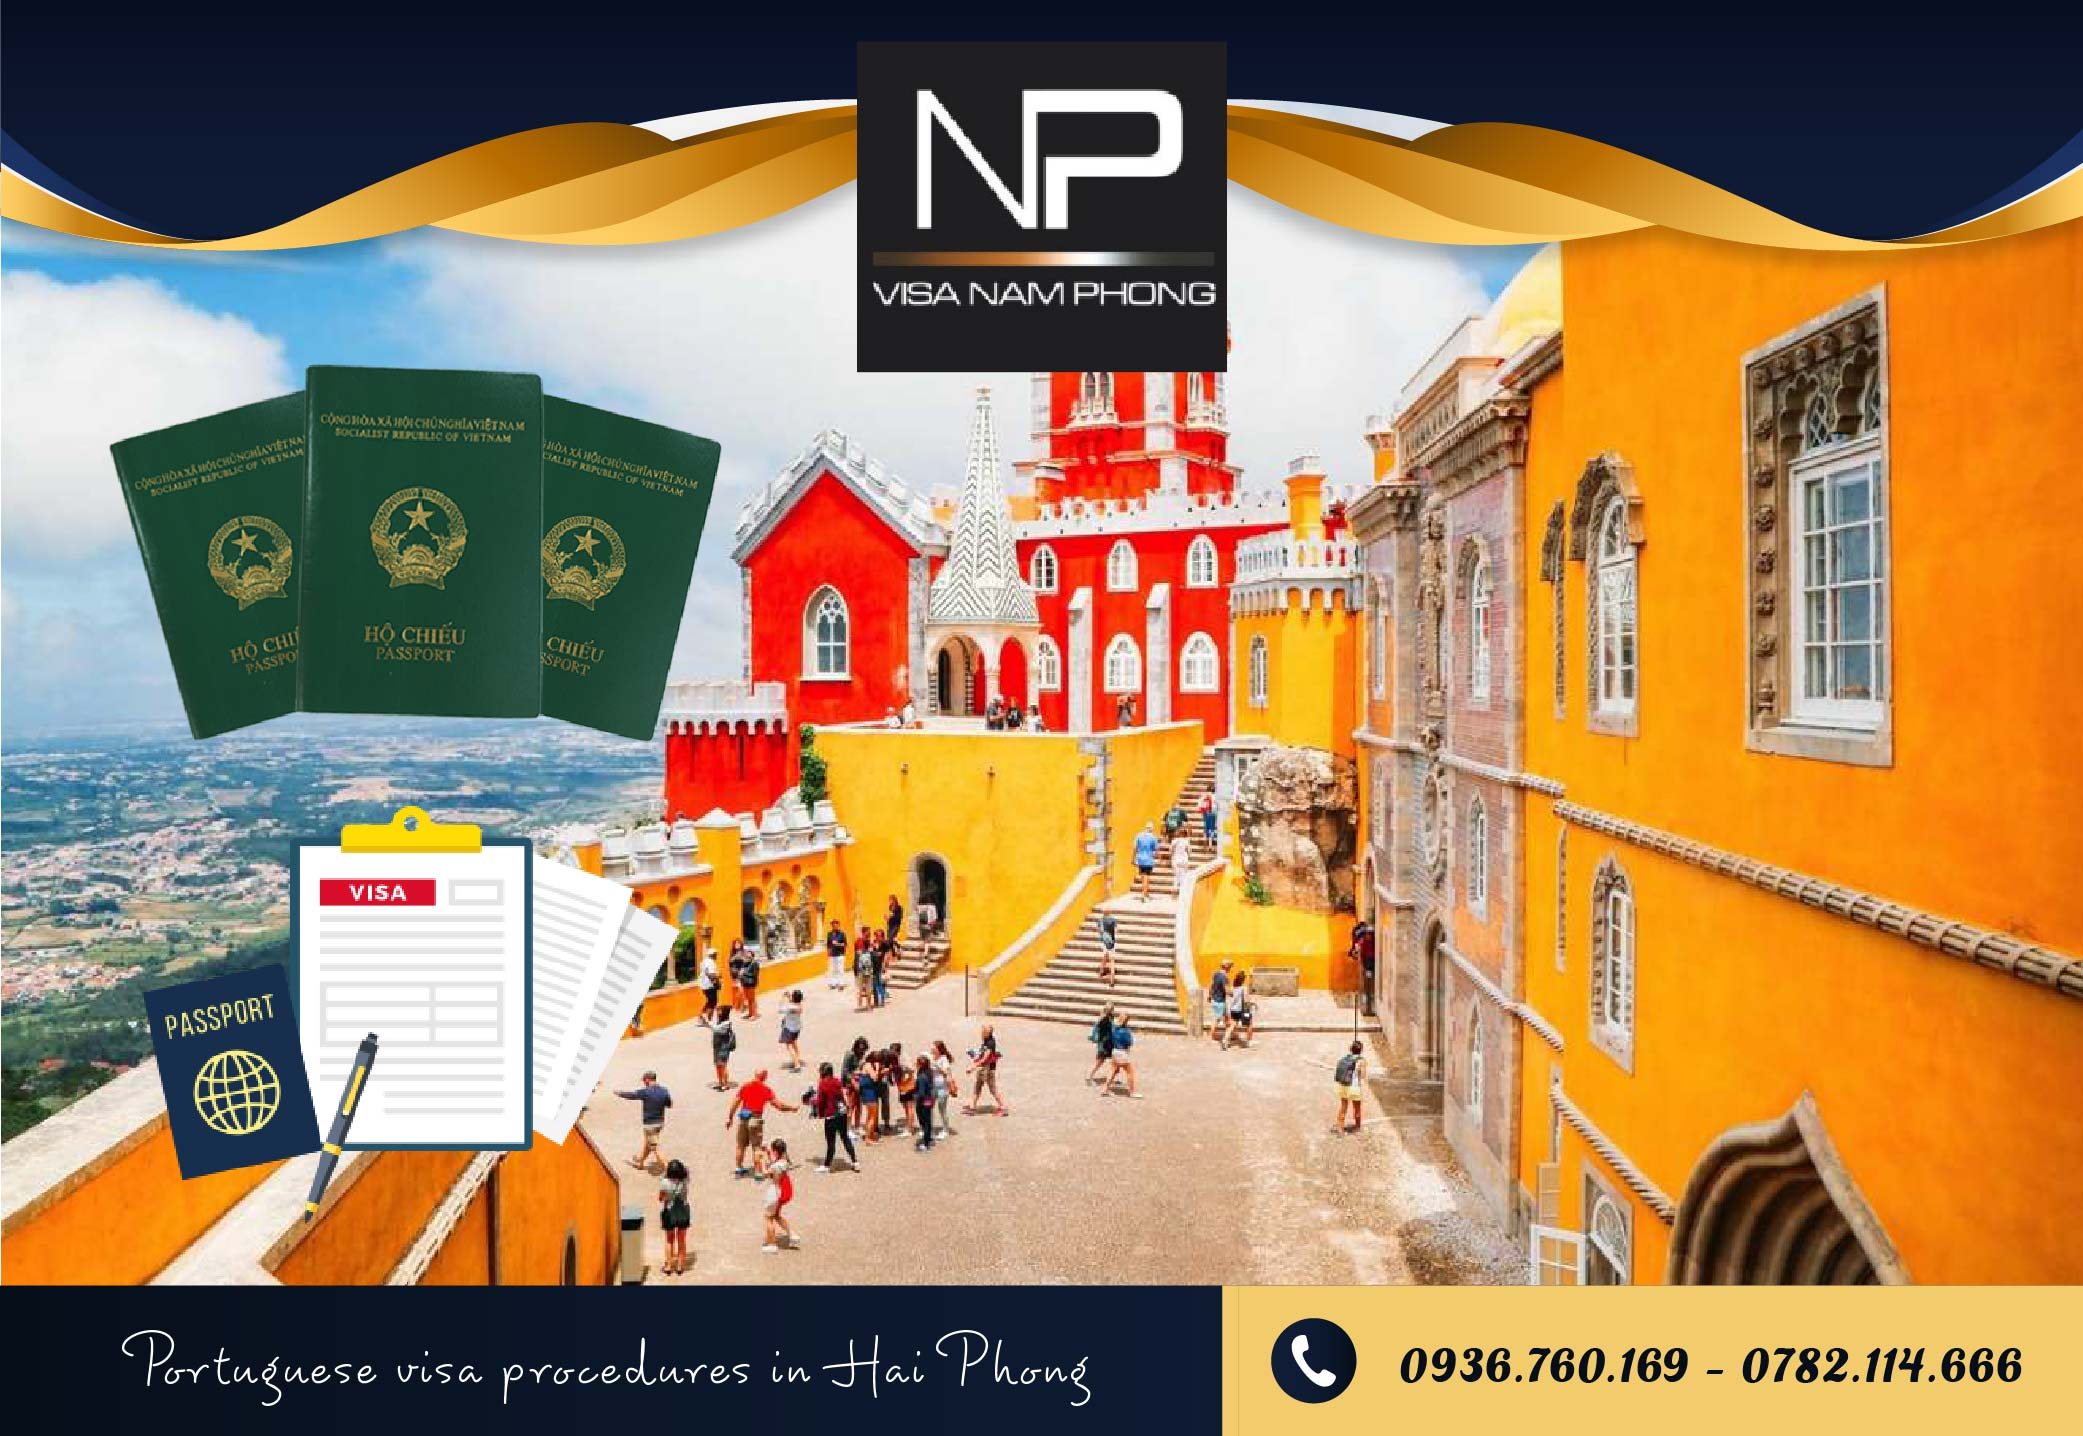 Portuguese visa procedures in Hai Phong